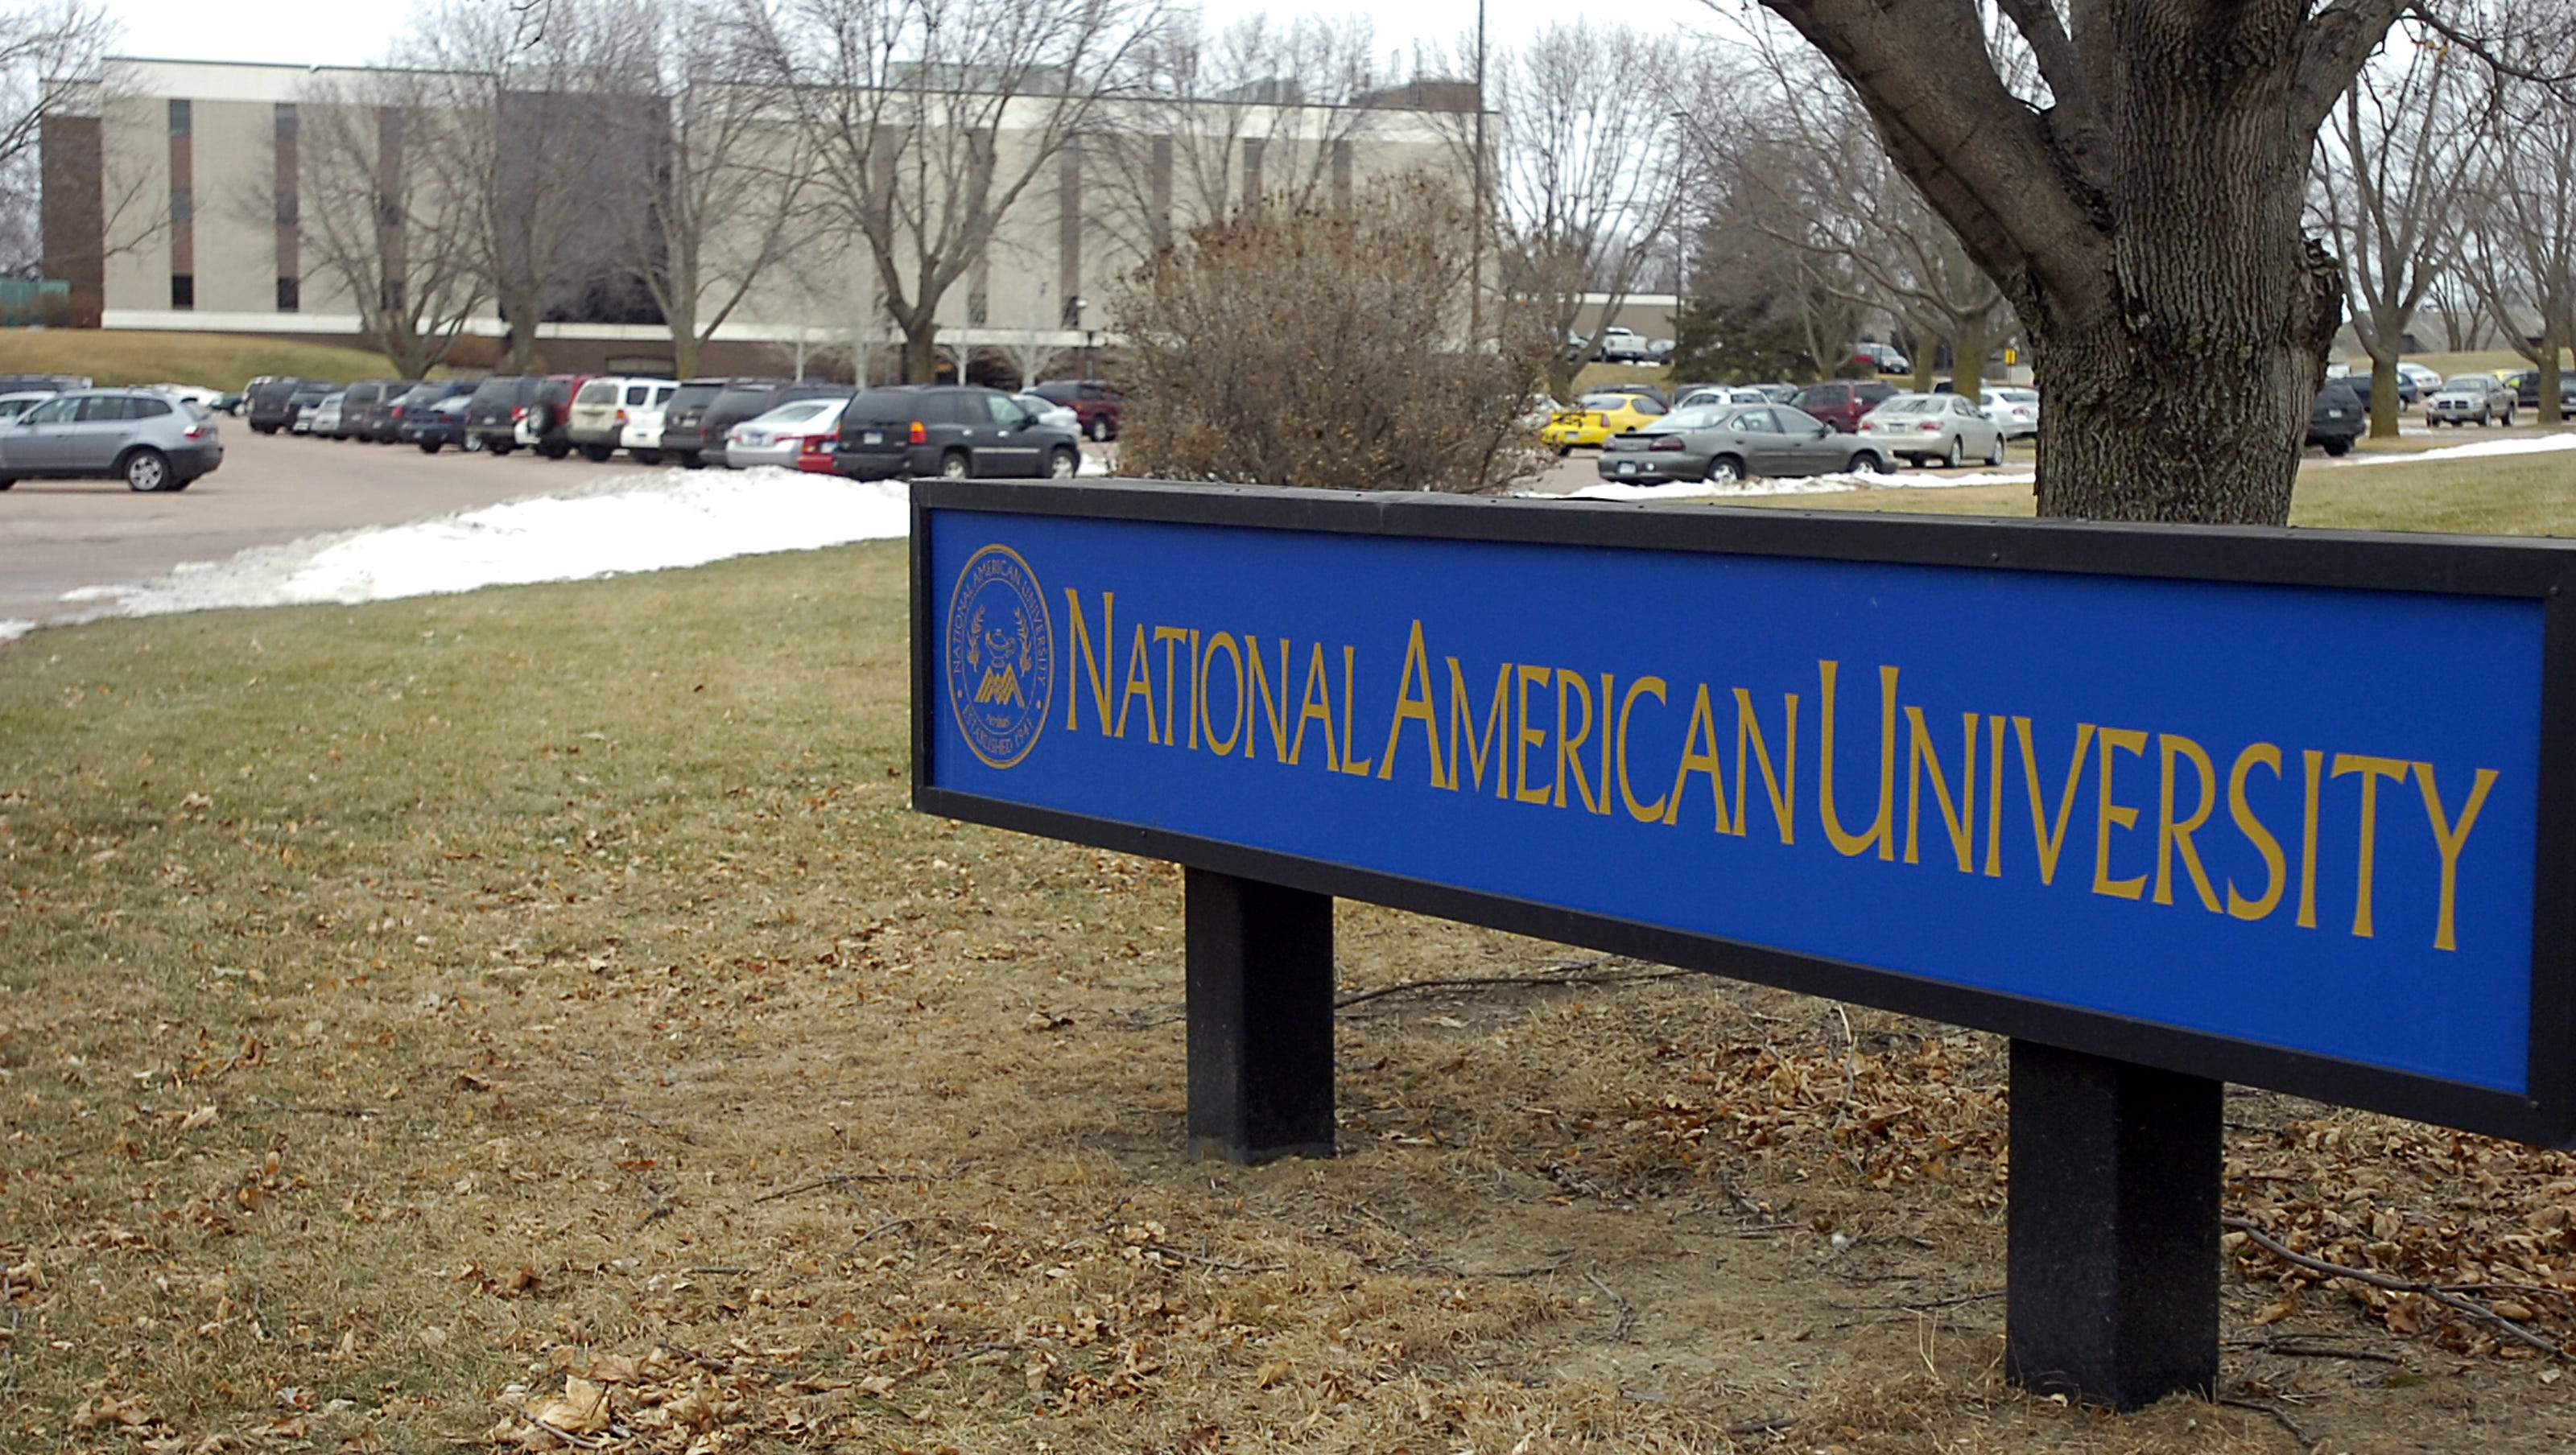 National American University Accused Of Defrauding Federal Student